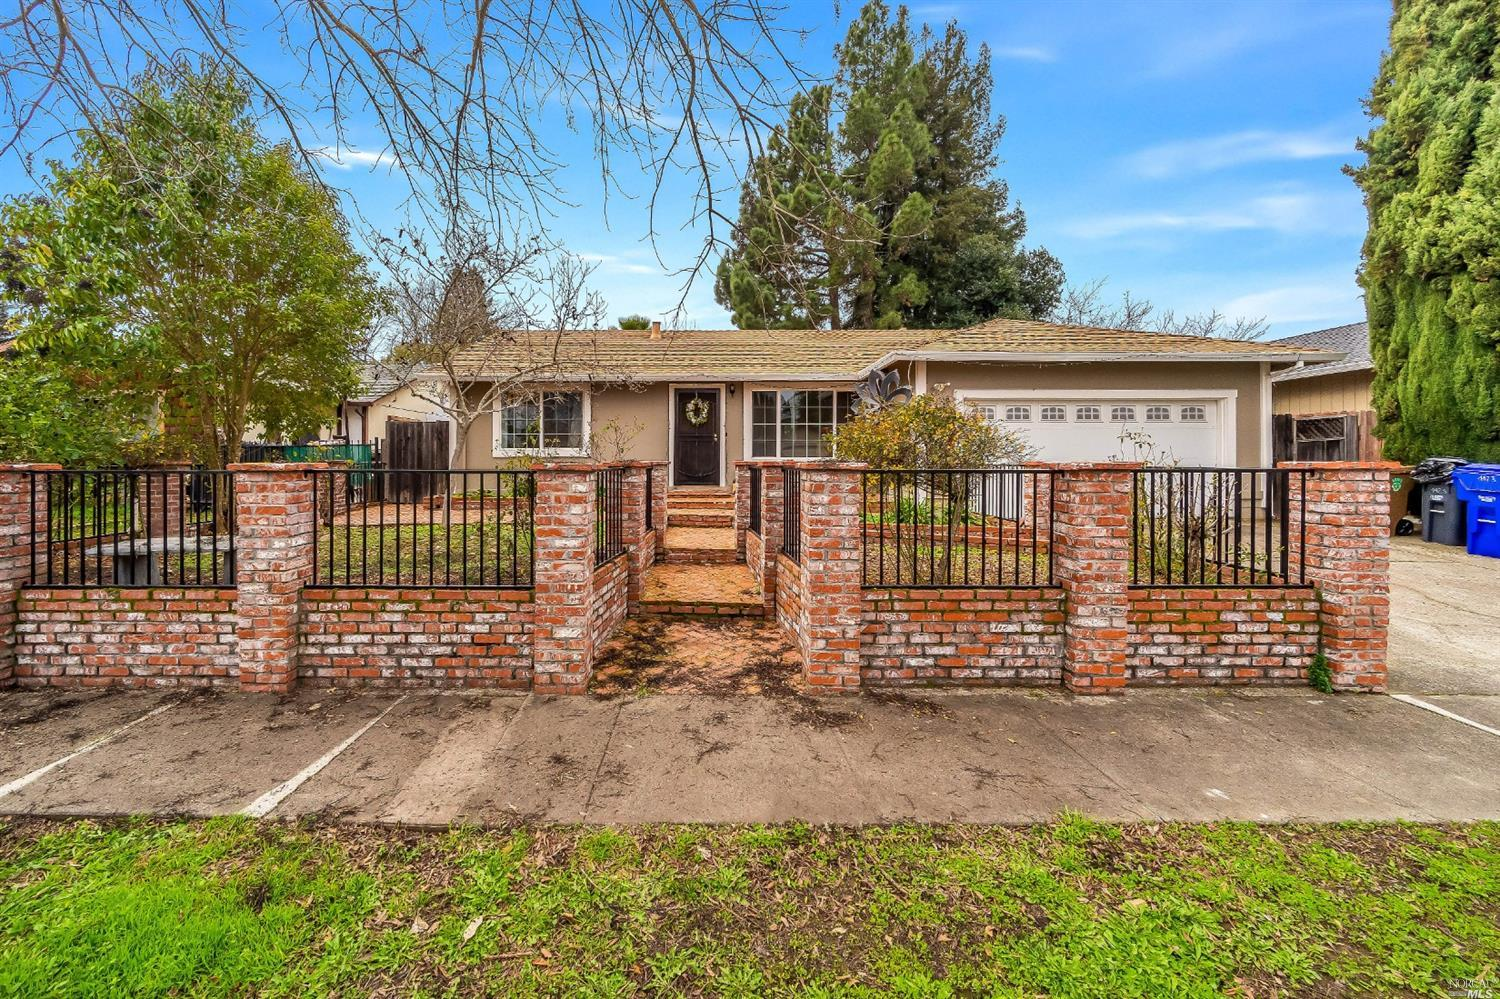 Charming and inviting home in a desirable North Napa neighborhood. This move-in ready home offers an